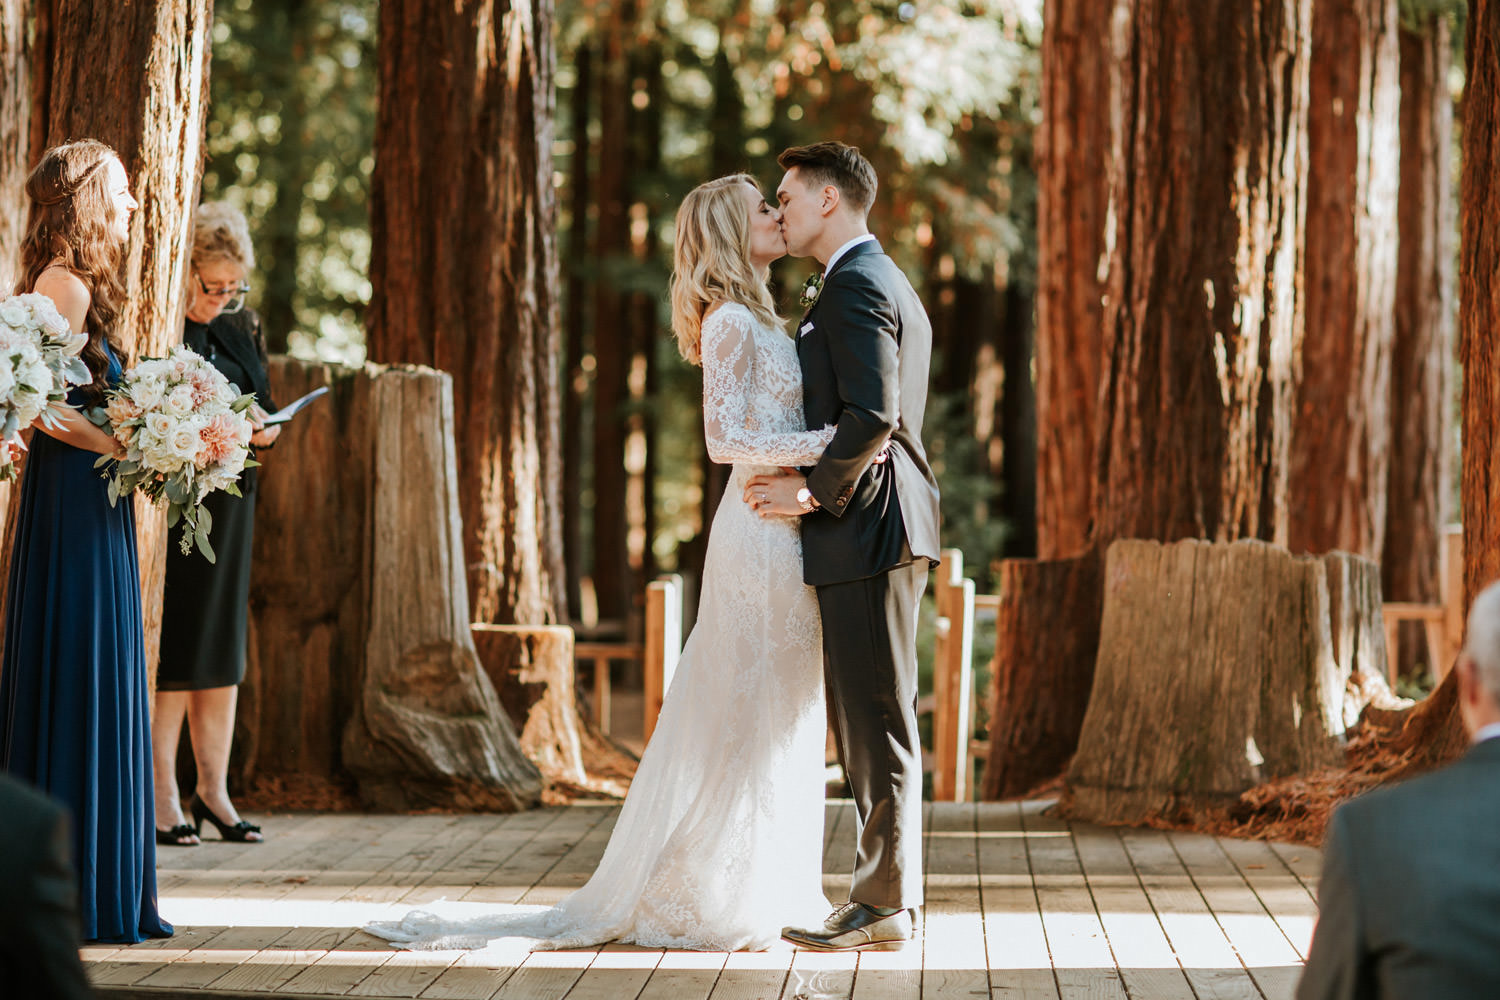 Picture of the first kiss, captured at the wedding at YMCA Camp Campbell